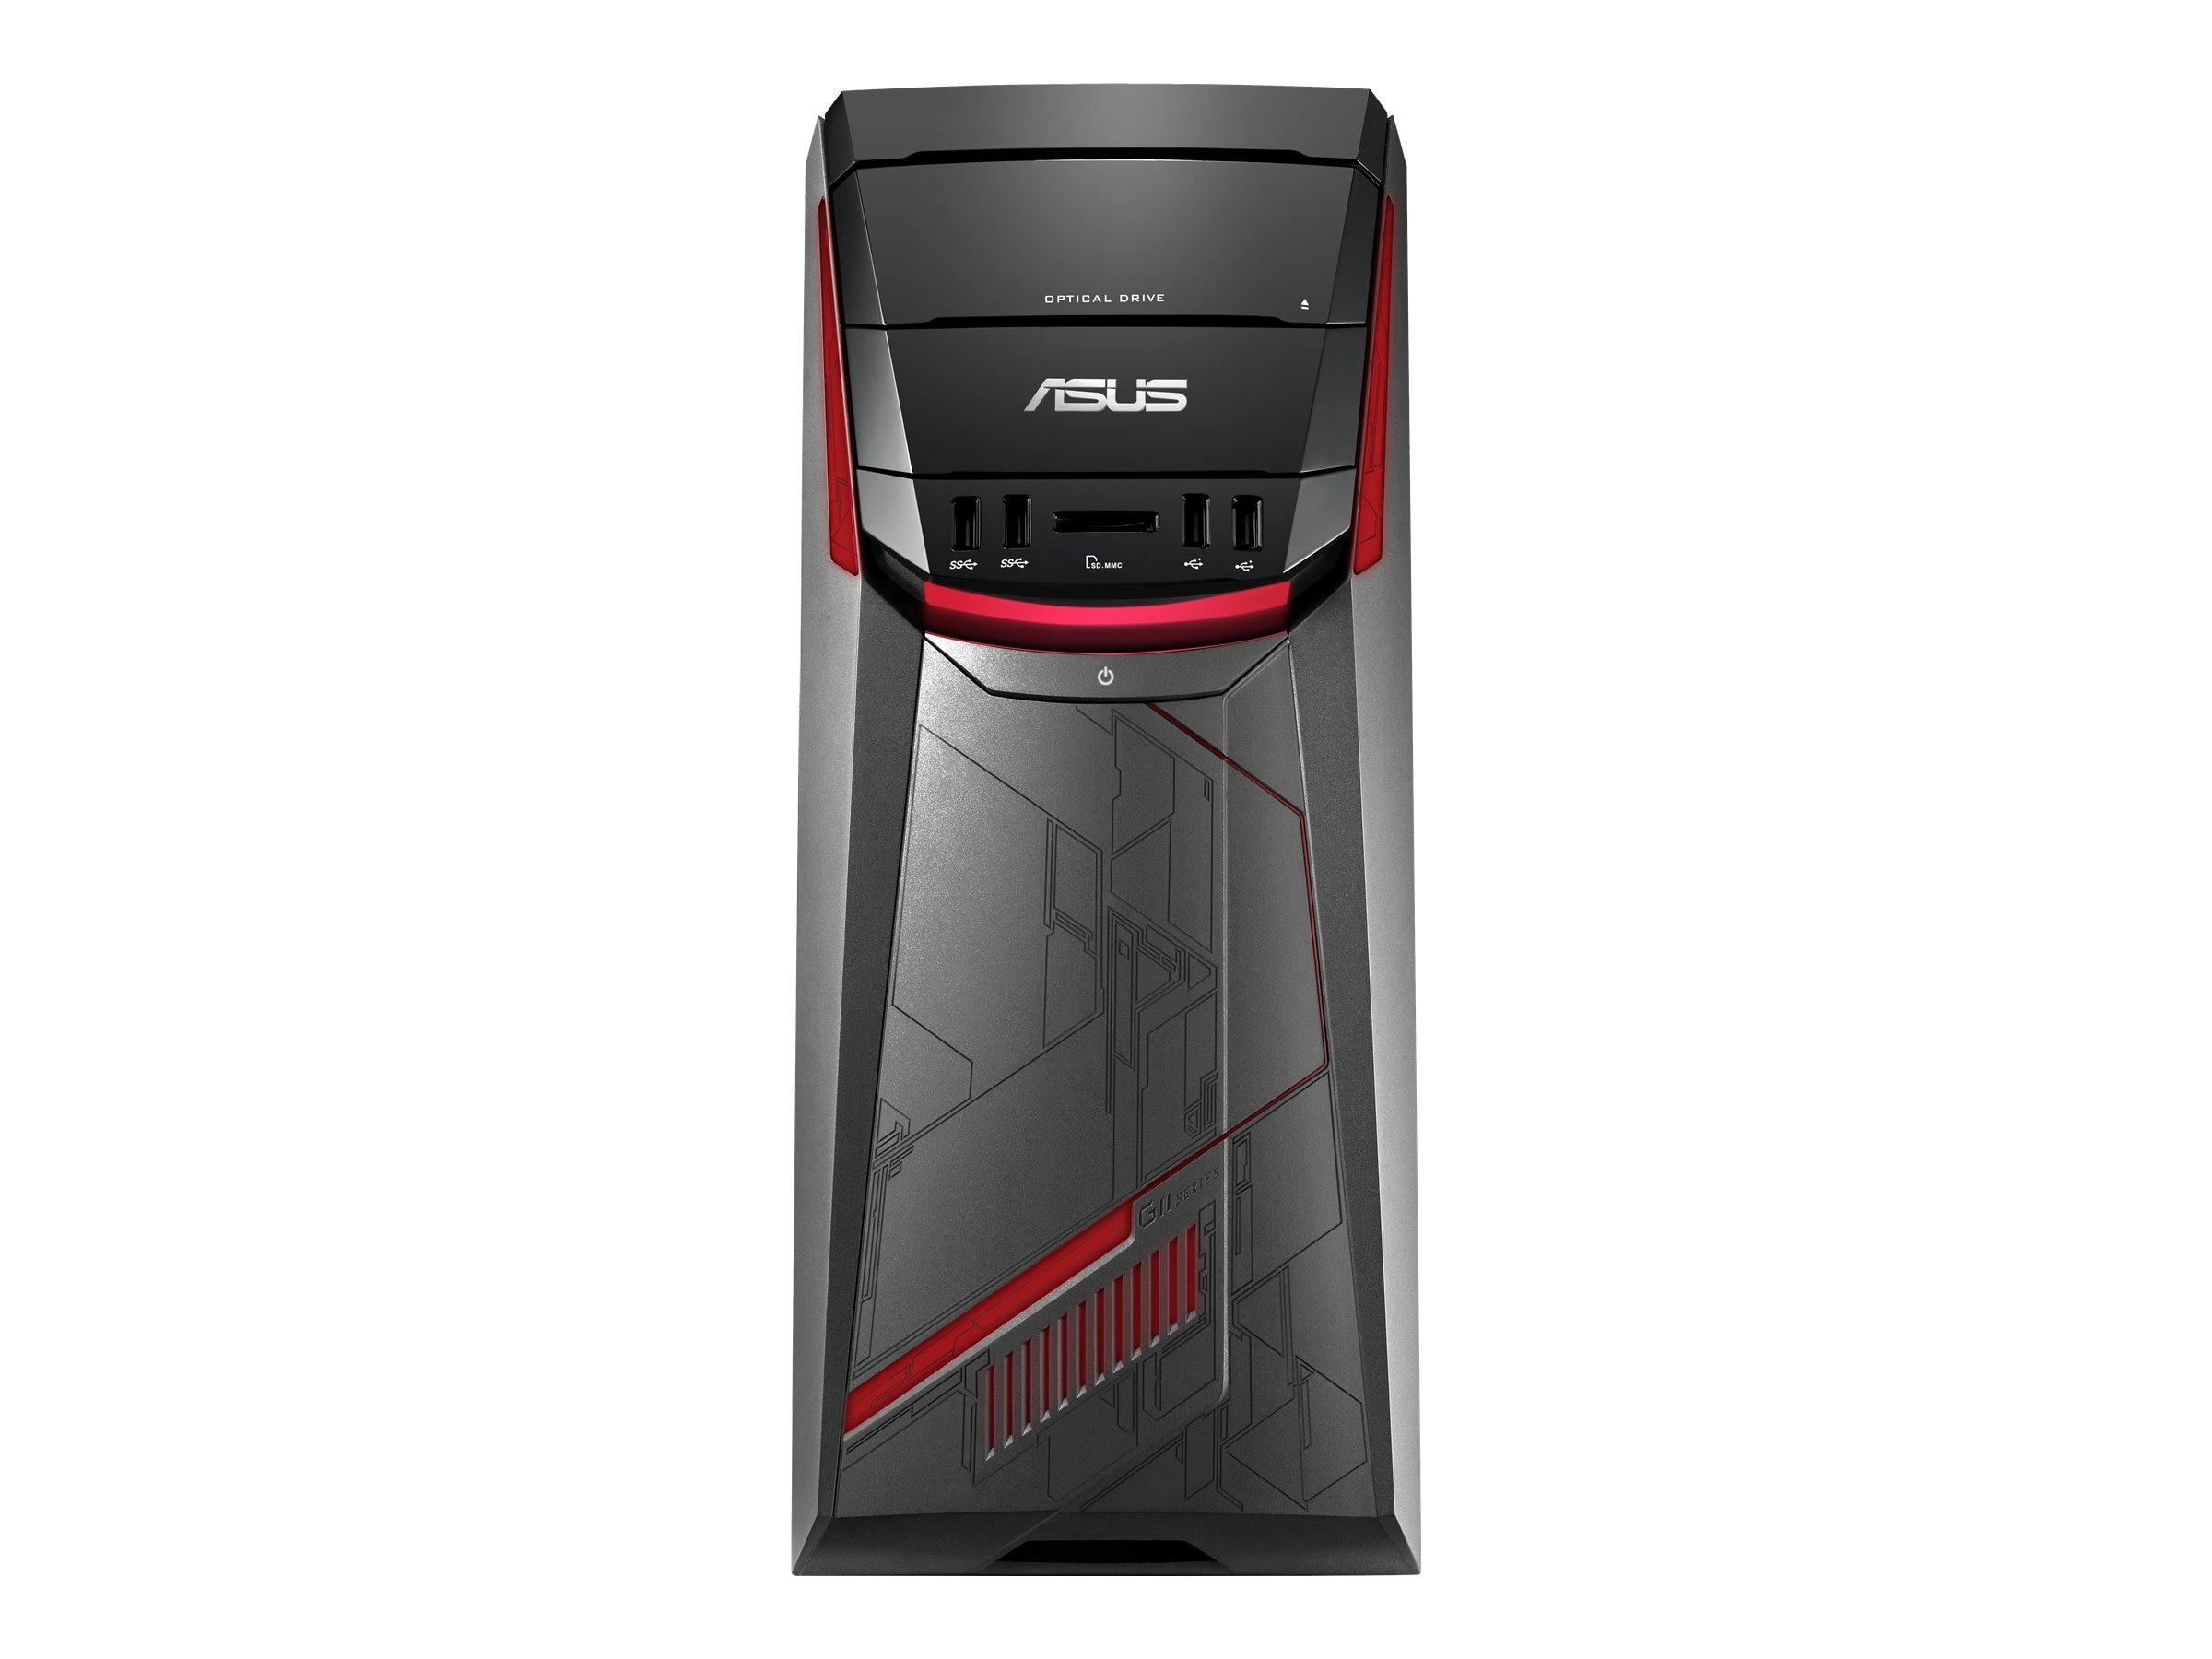 Asus G11CD-DB71 Tower Core i7-6700 16GB 1TB W10, G11CD-DB71